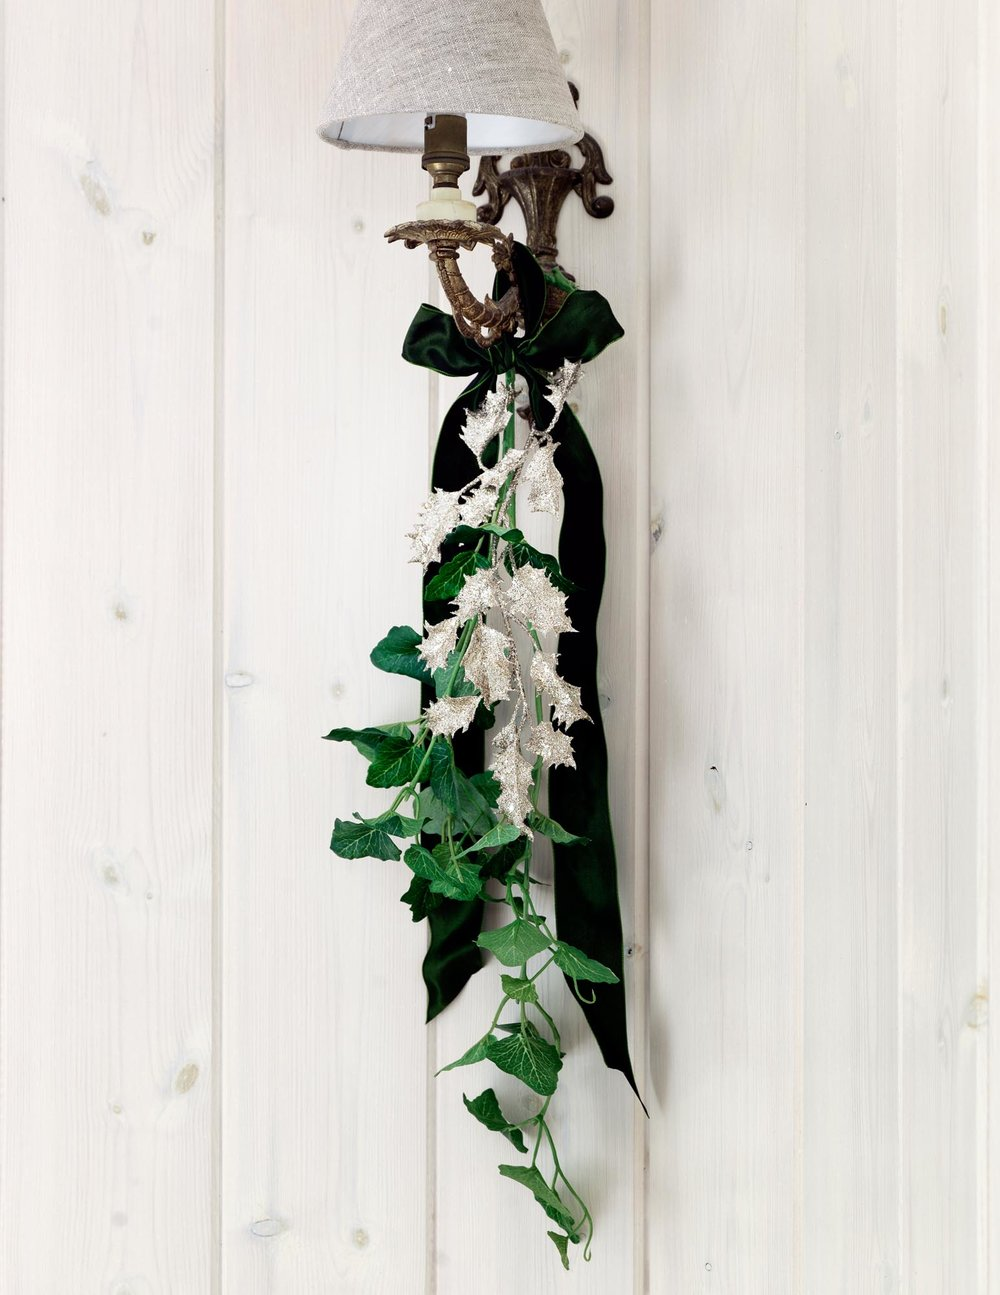 39.HomesAndGardensJan17SimonBrownMarinaFilippelliAliBrownFestiveEntertainingWallLightDecoration.jpg